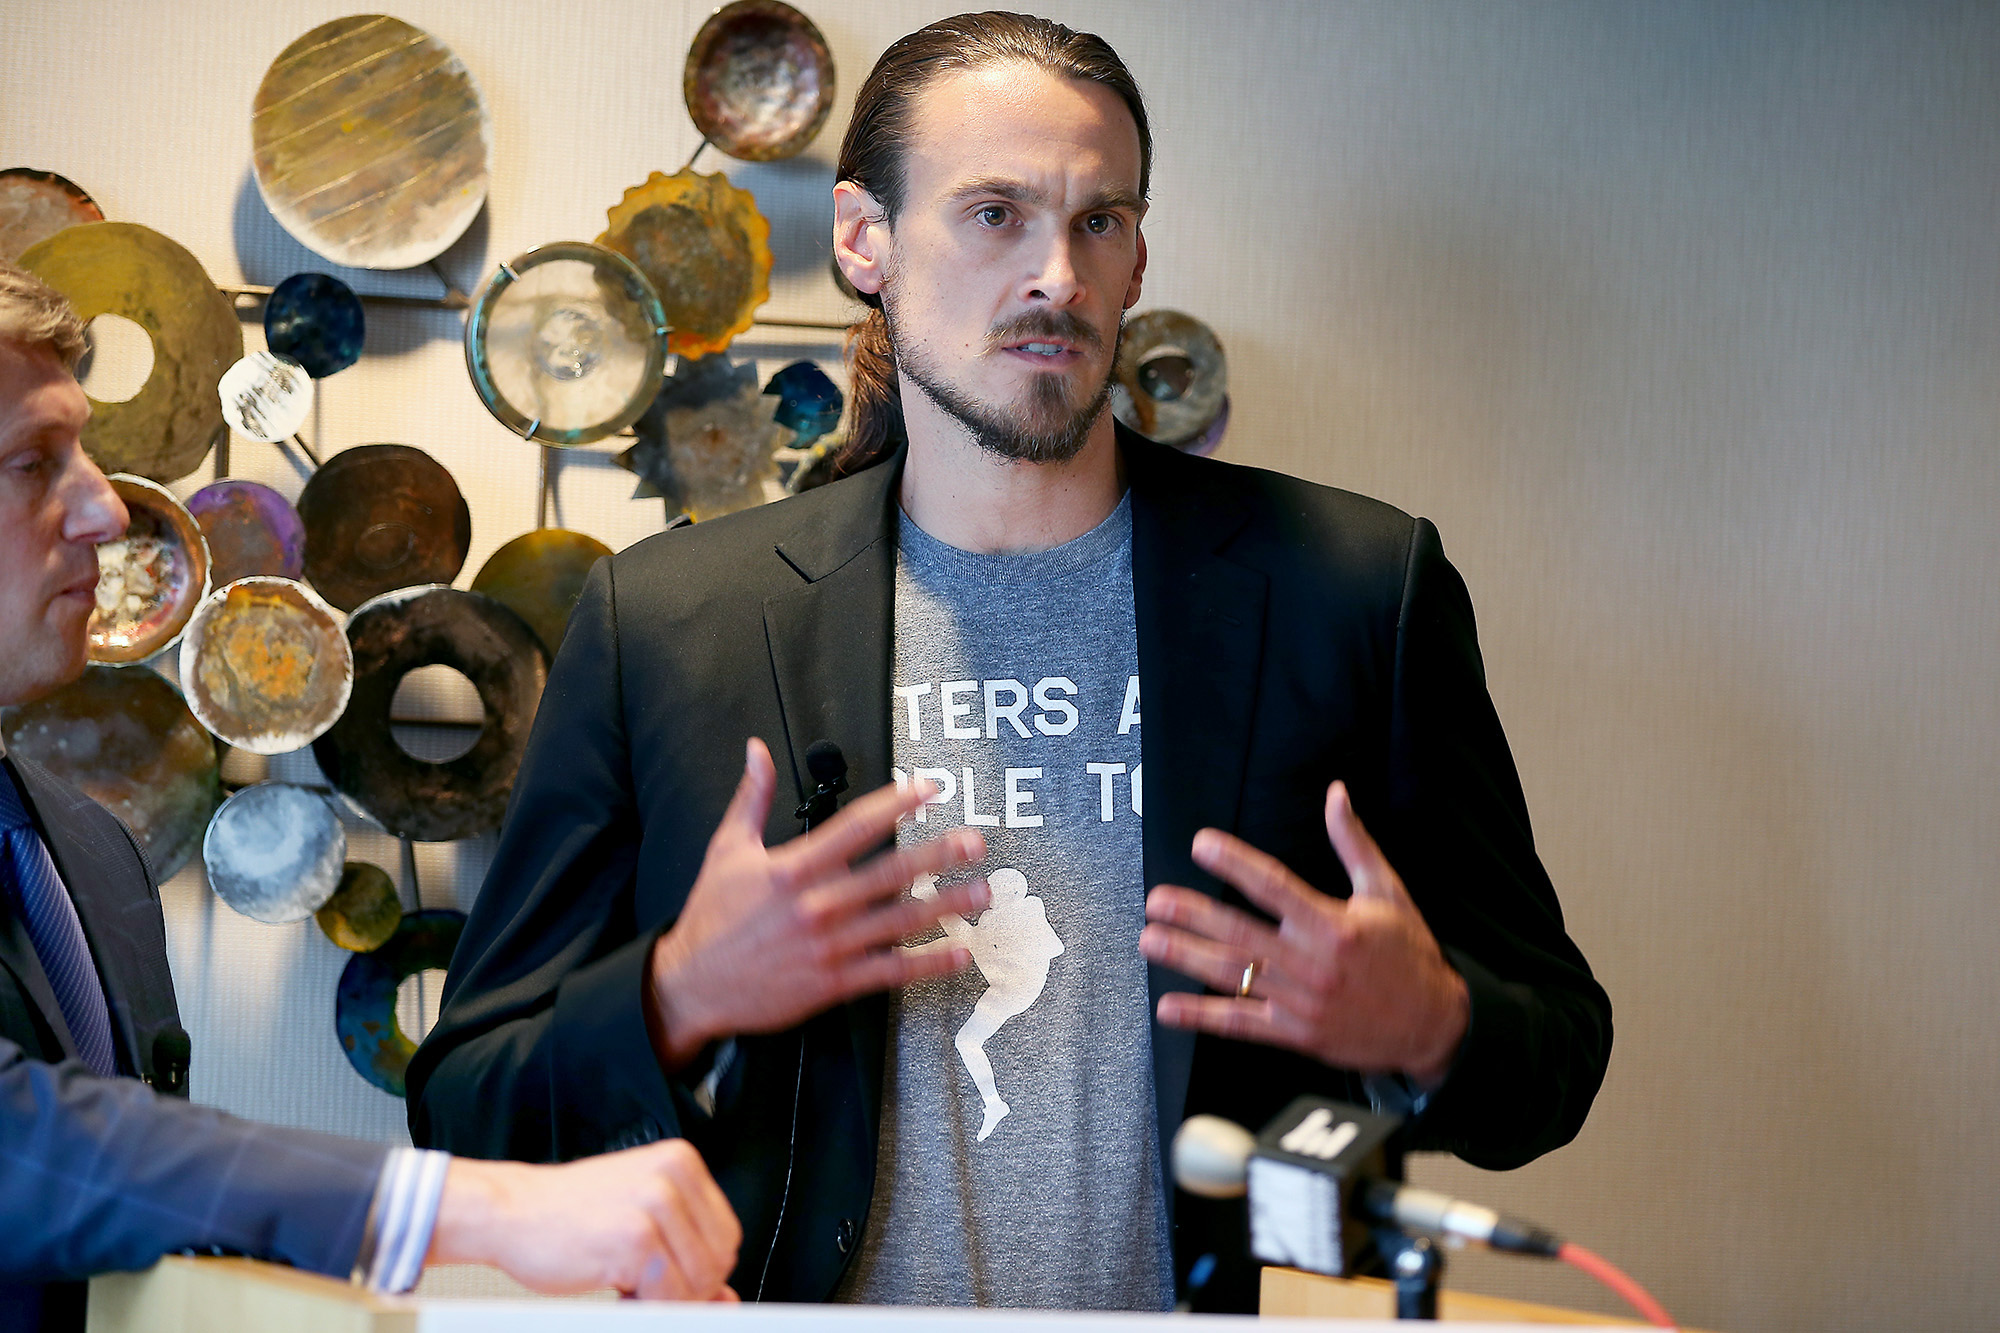 Former Minnesota Vikings punter Chris Kluwe, right, speaks during a press conference, Tuesday, July 15, 2014 in Minneapolis, Minn. Former Minnesota Vikings punter Chris Kluwe intends to sue the team over allegations of anti-gay conduct by a coach, his lawyer said Tuesday